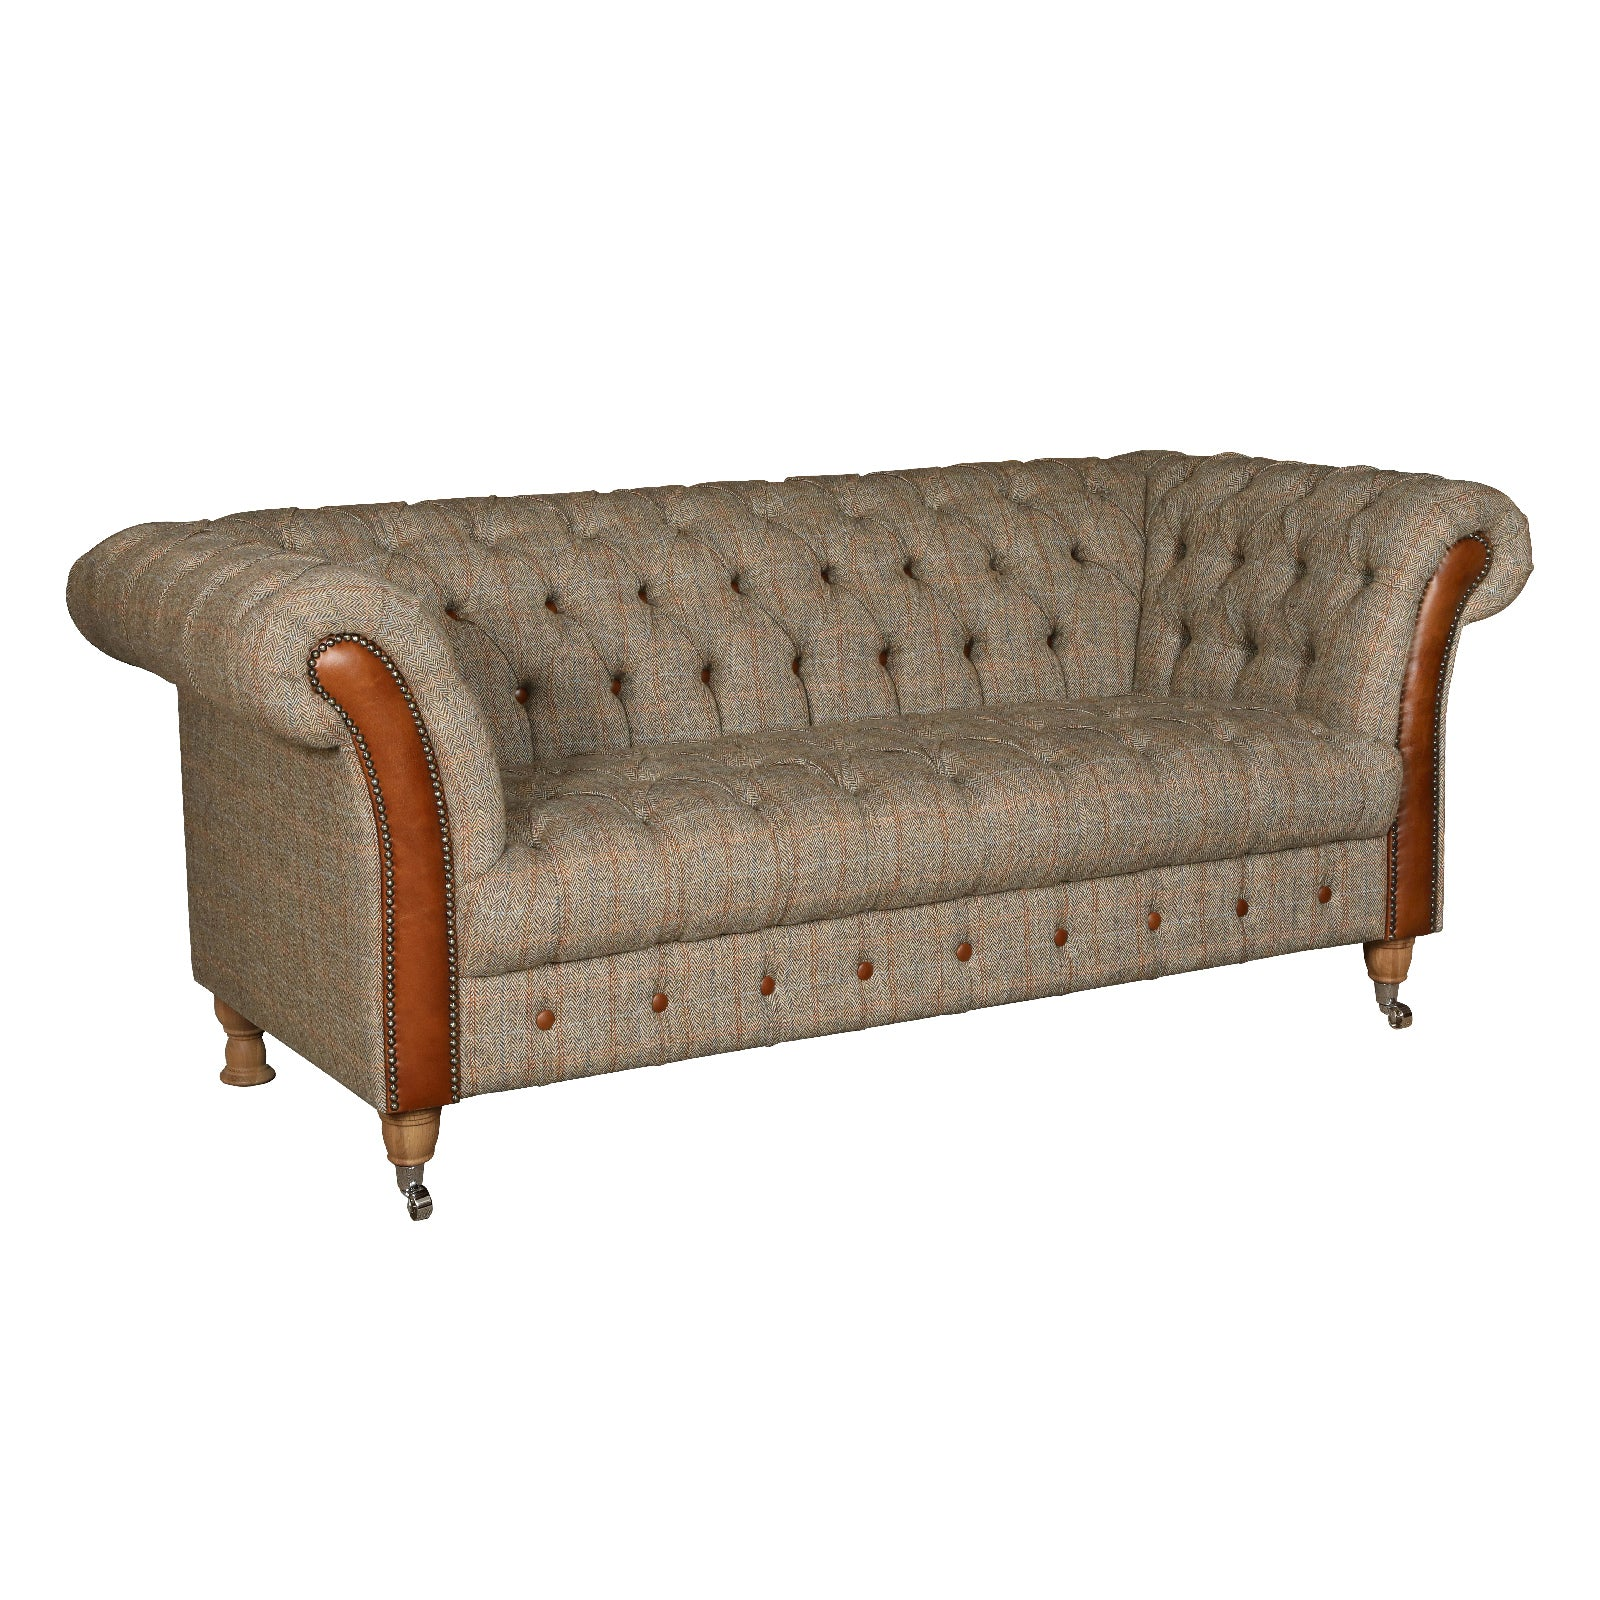 Chester Club Harris Tweed and Leather Sofas and Chair.